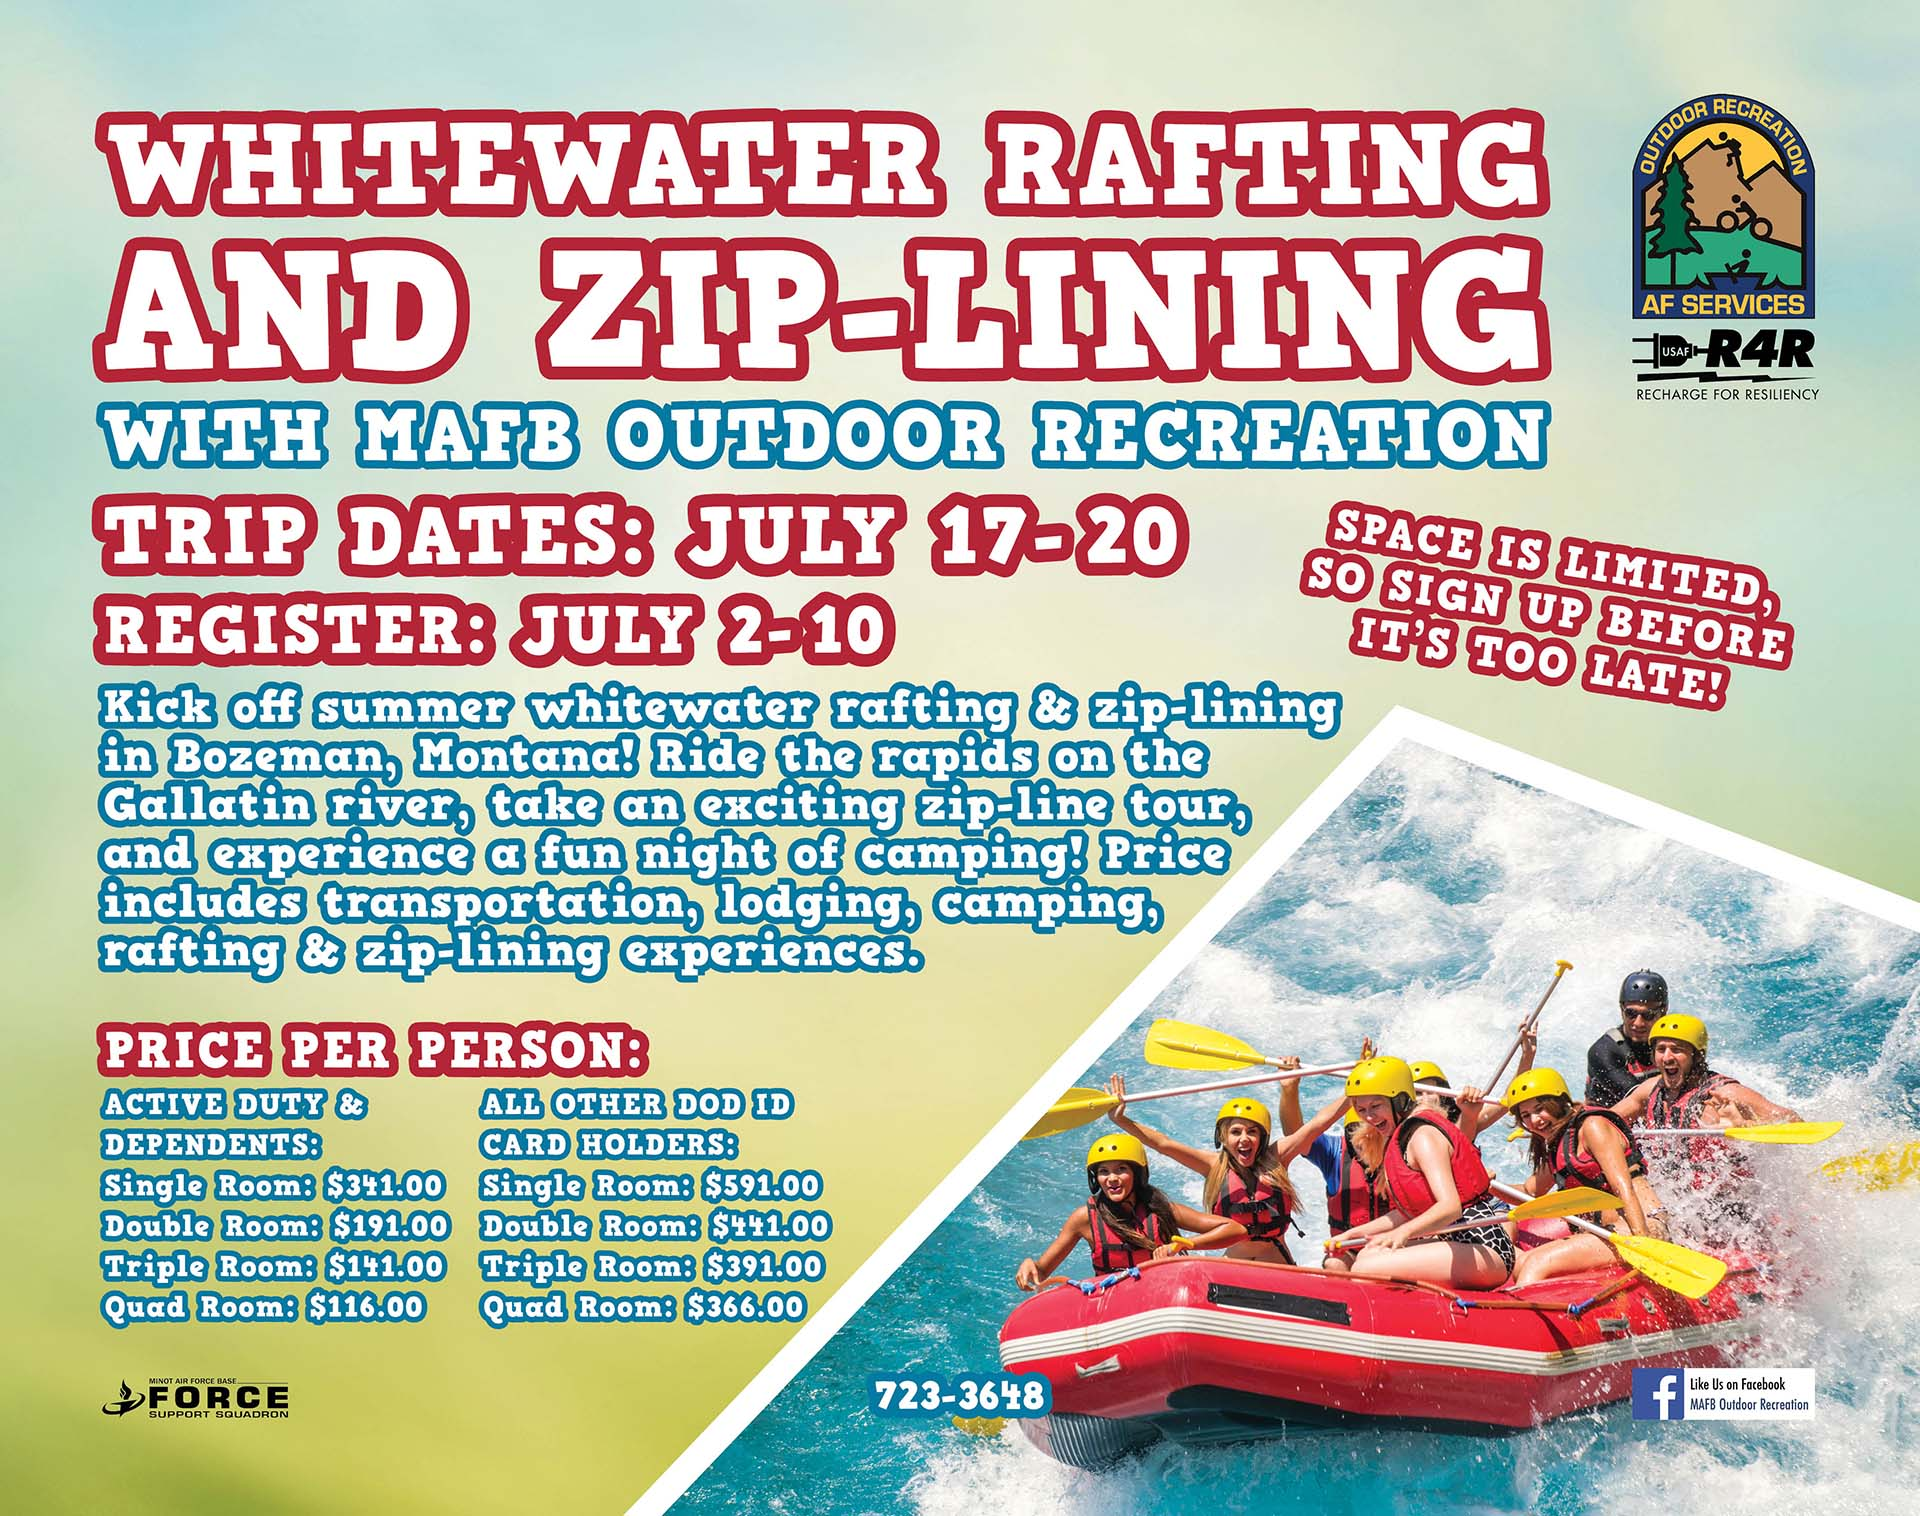 REGISTRATION OPENS for Whitewater Rafting & Zip-Lining Trip to Bozeman, MT